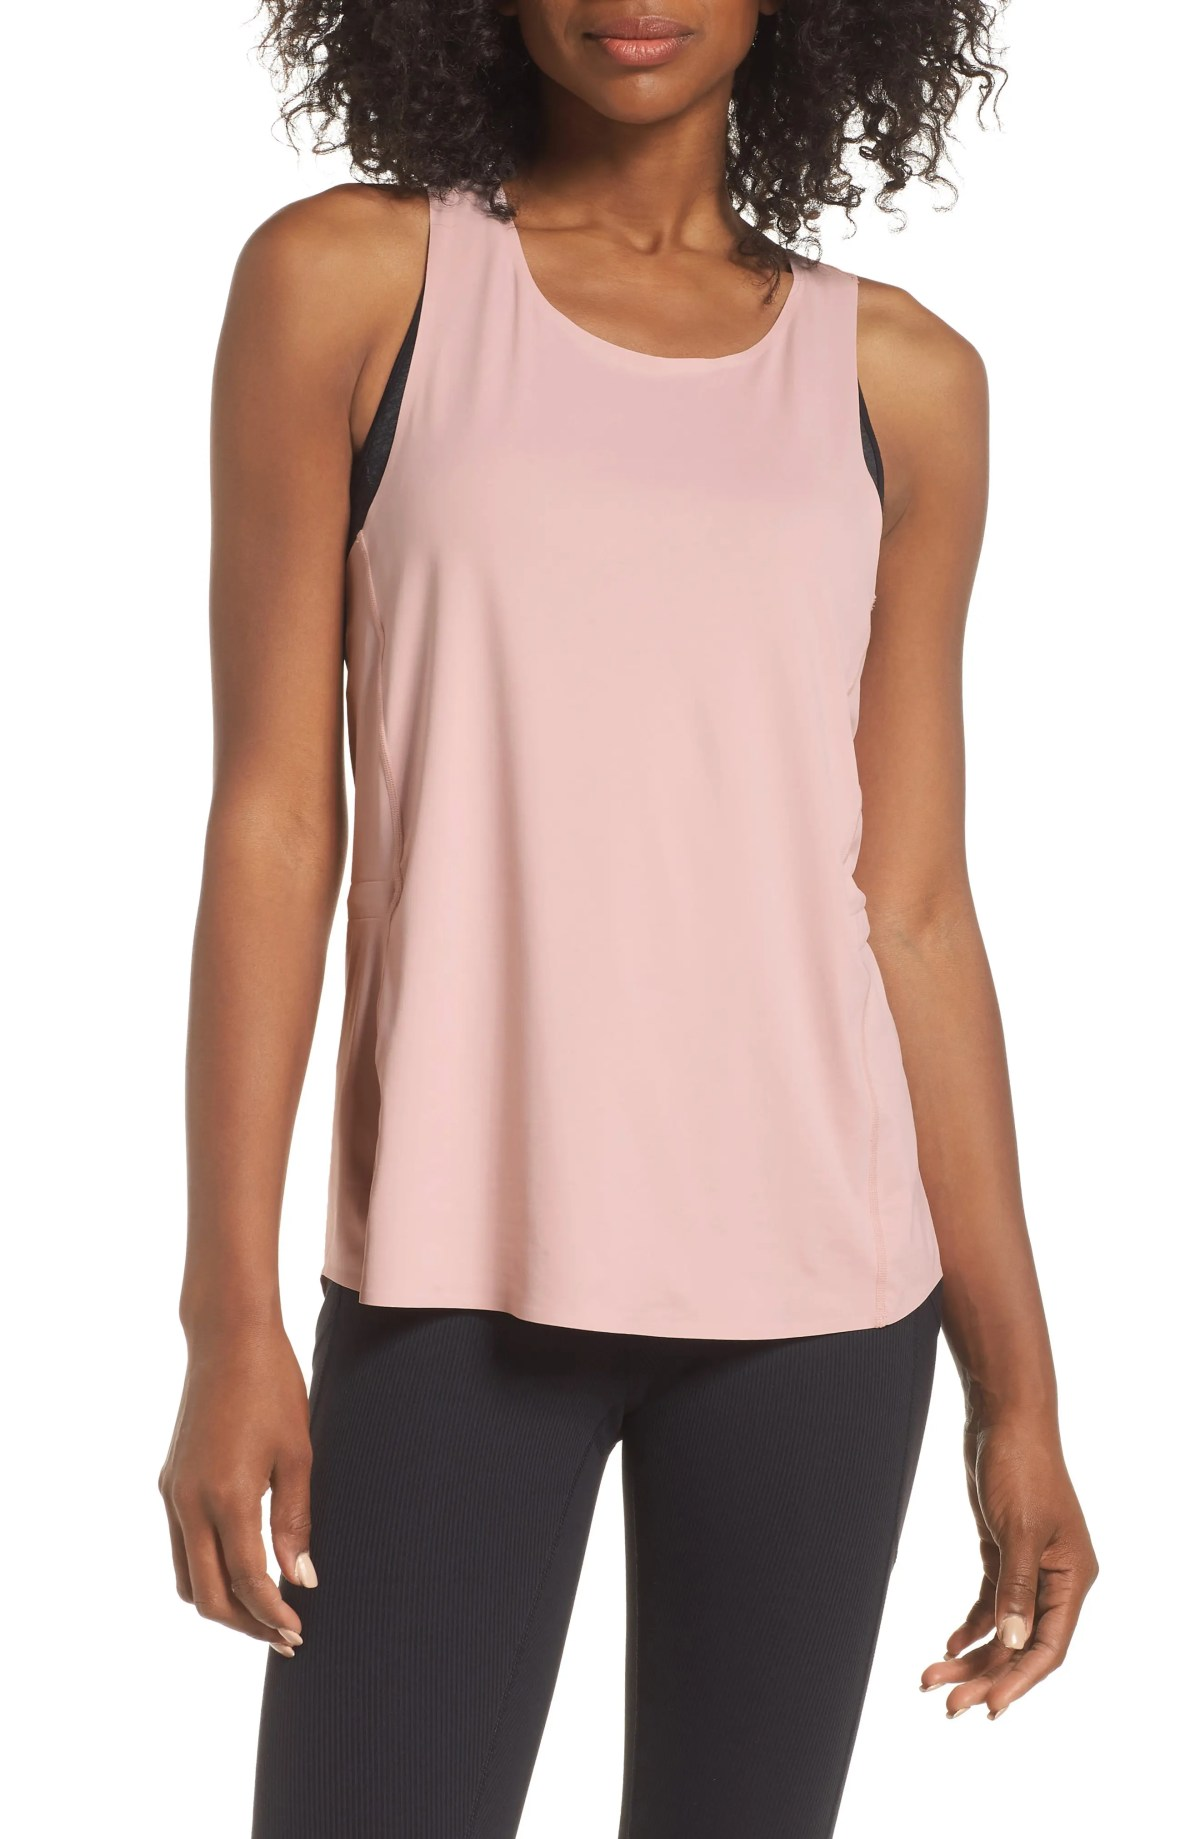 ZELLA Serena Run Racerback Tank, Main, color, PINK PEACHSKIN